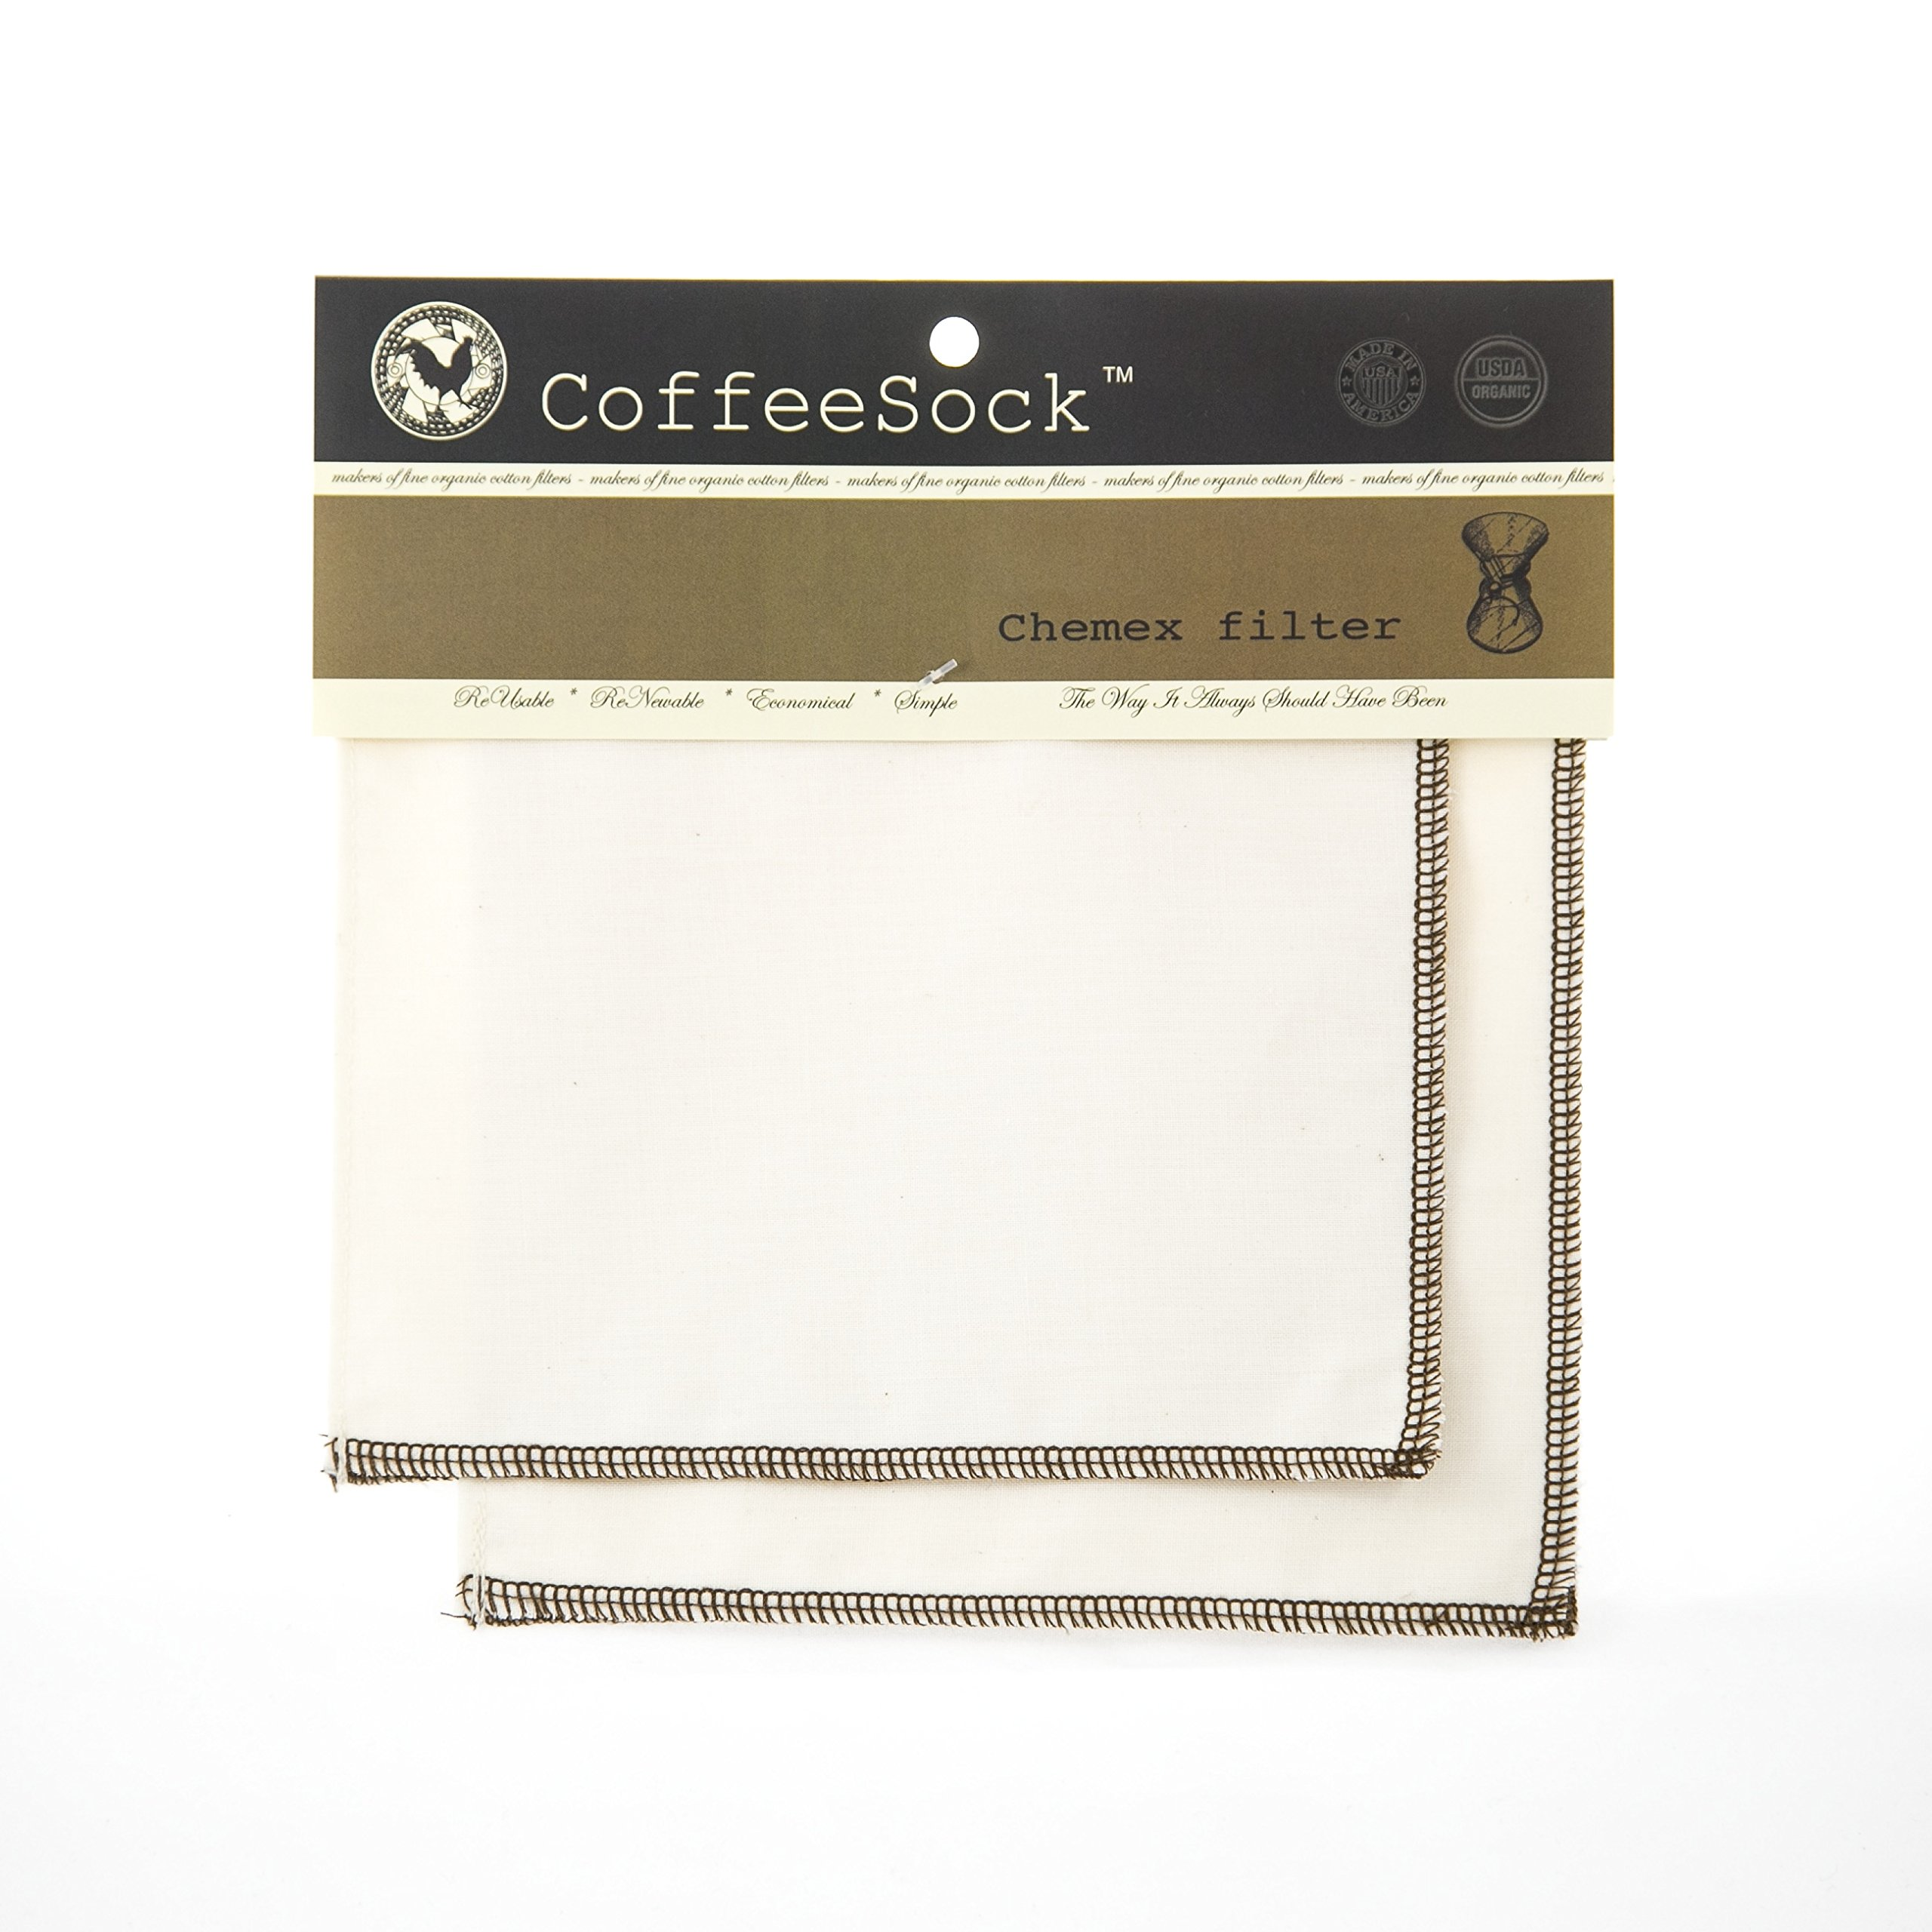 CoffeeSock Reusable Filters Made to Fit Chemex 6-13 Cup Carafes - GOTS Certified Organic Cotton Reusable Coffee Filters